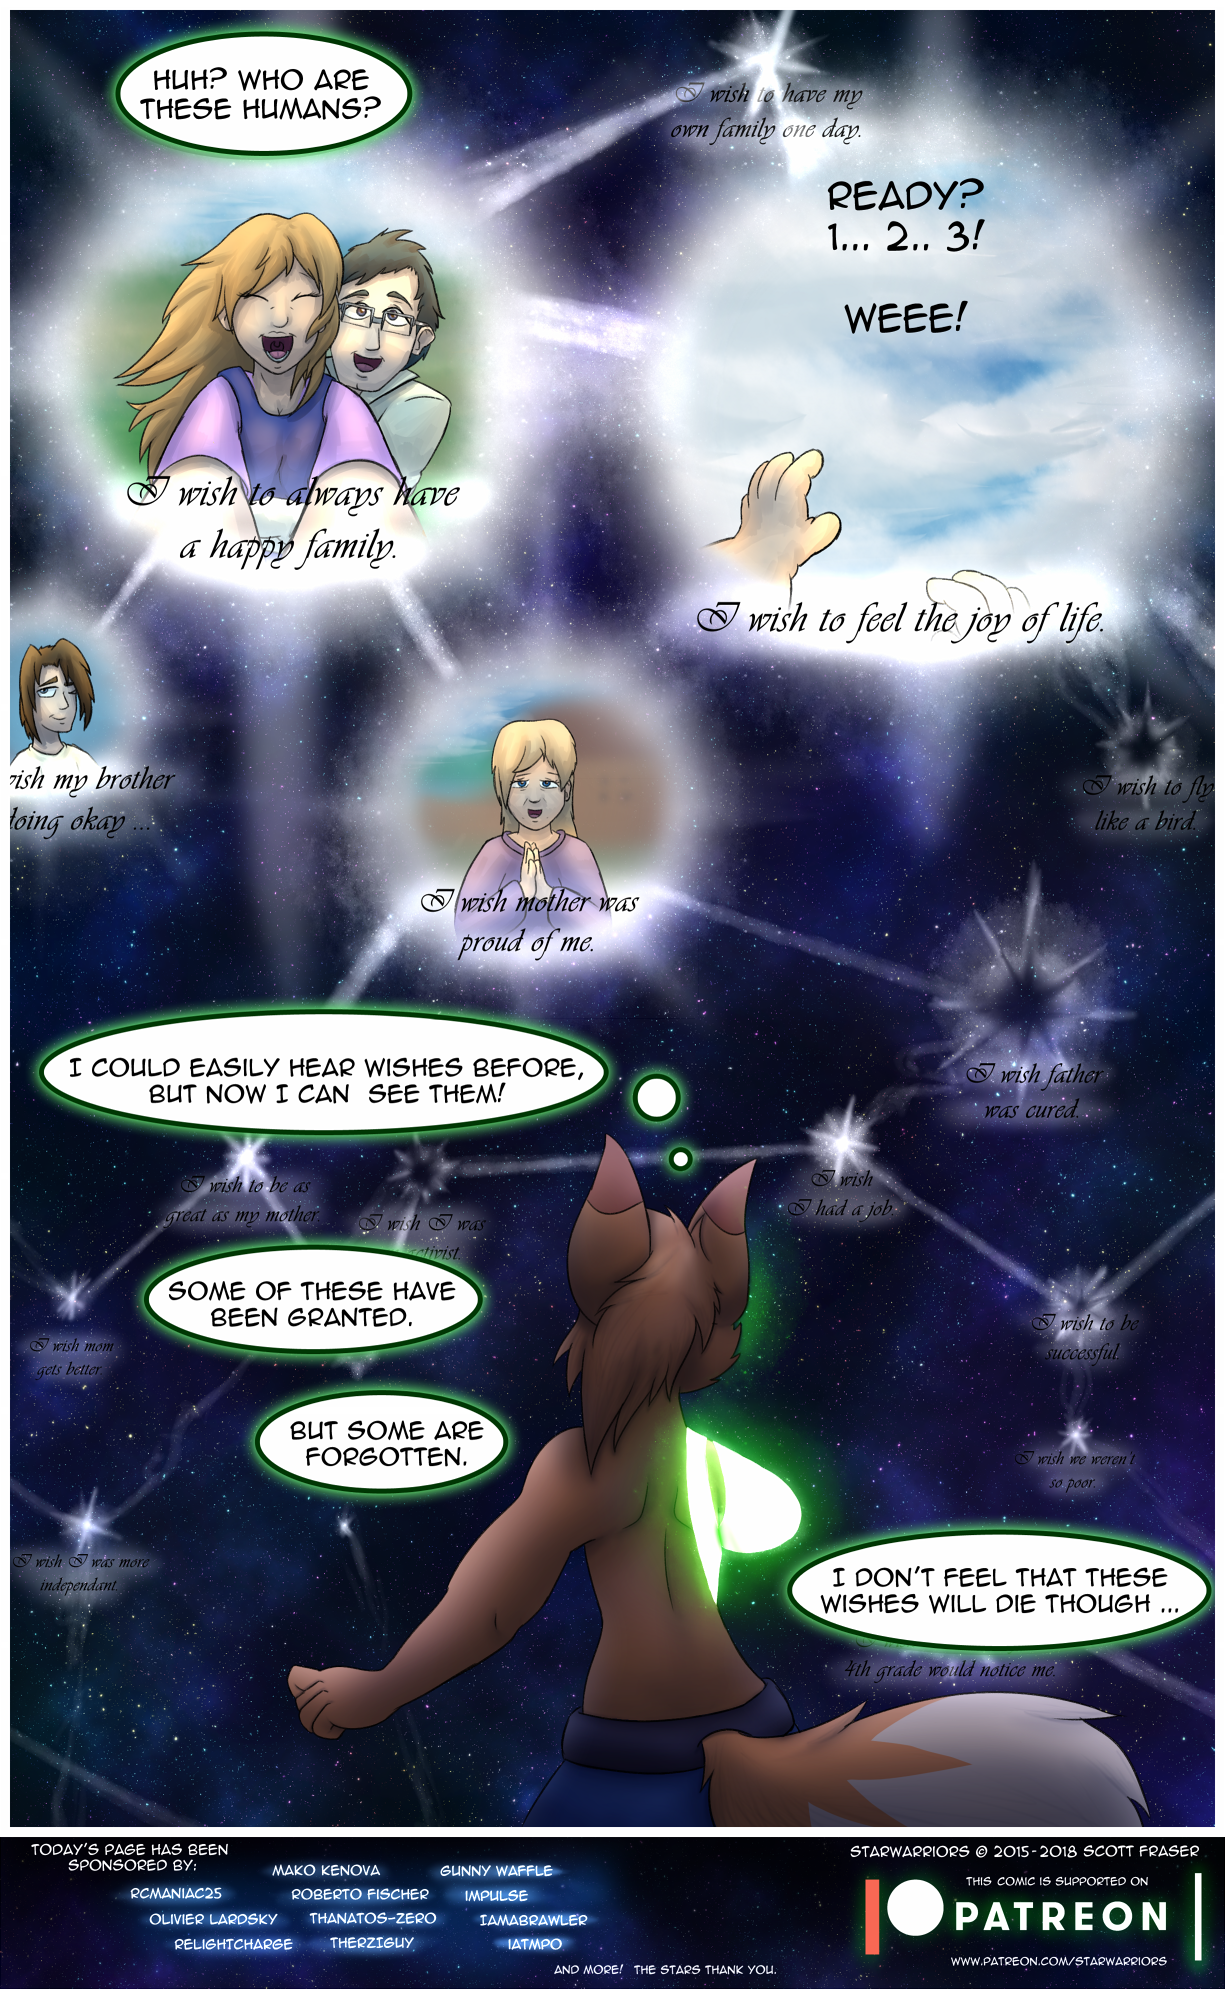 Ch3 Page 29 – Wishes